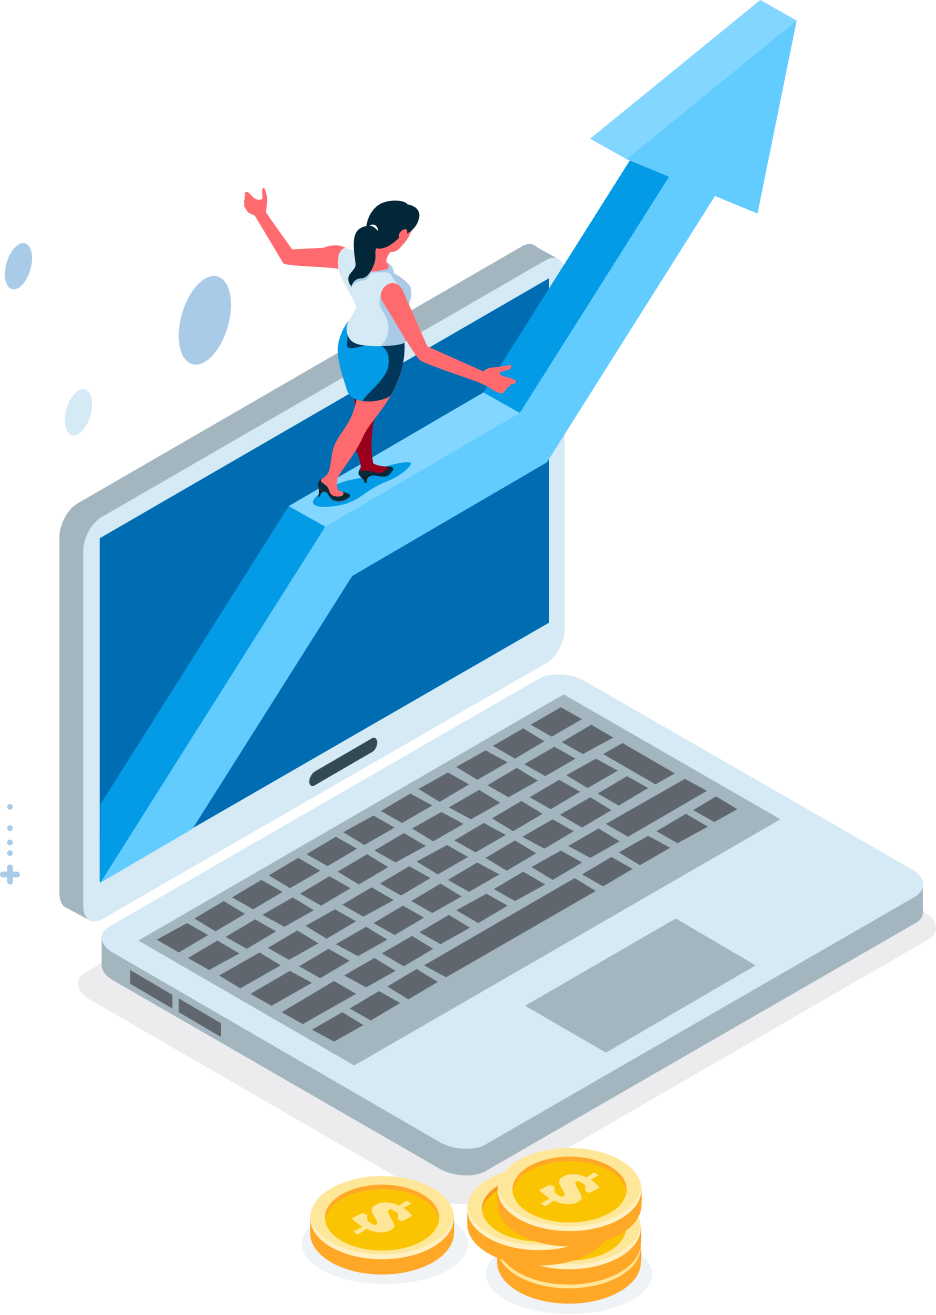 Incrementl Revenue - Illustration of a girl tread-walking on an upward graph coming out of a laptop screen